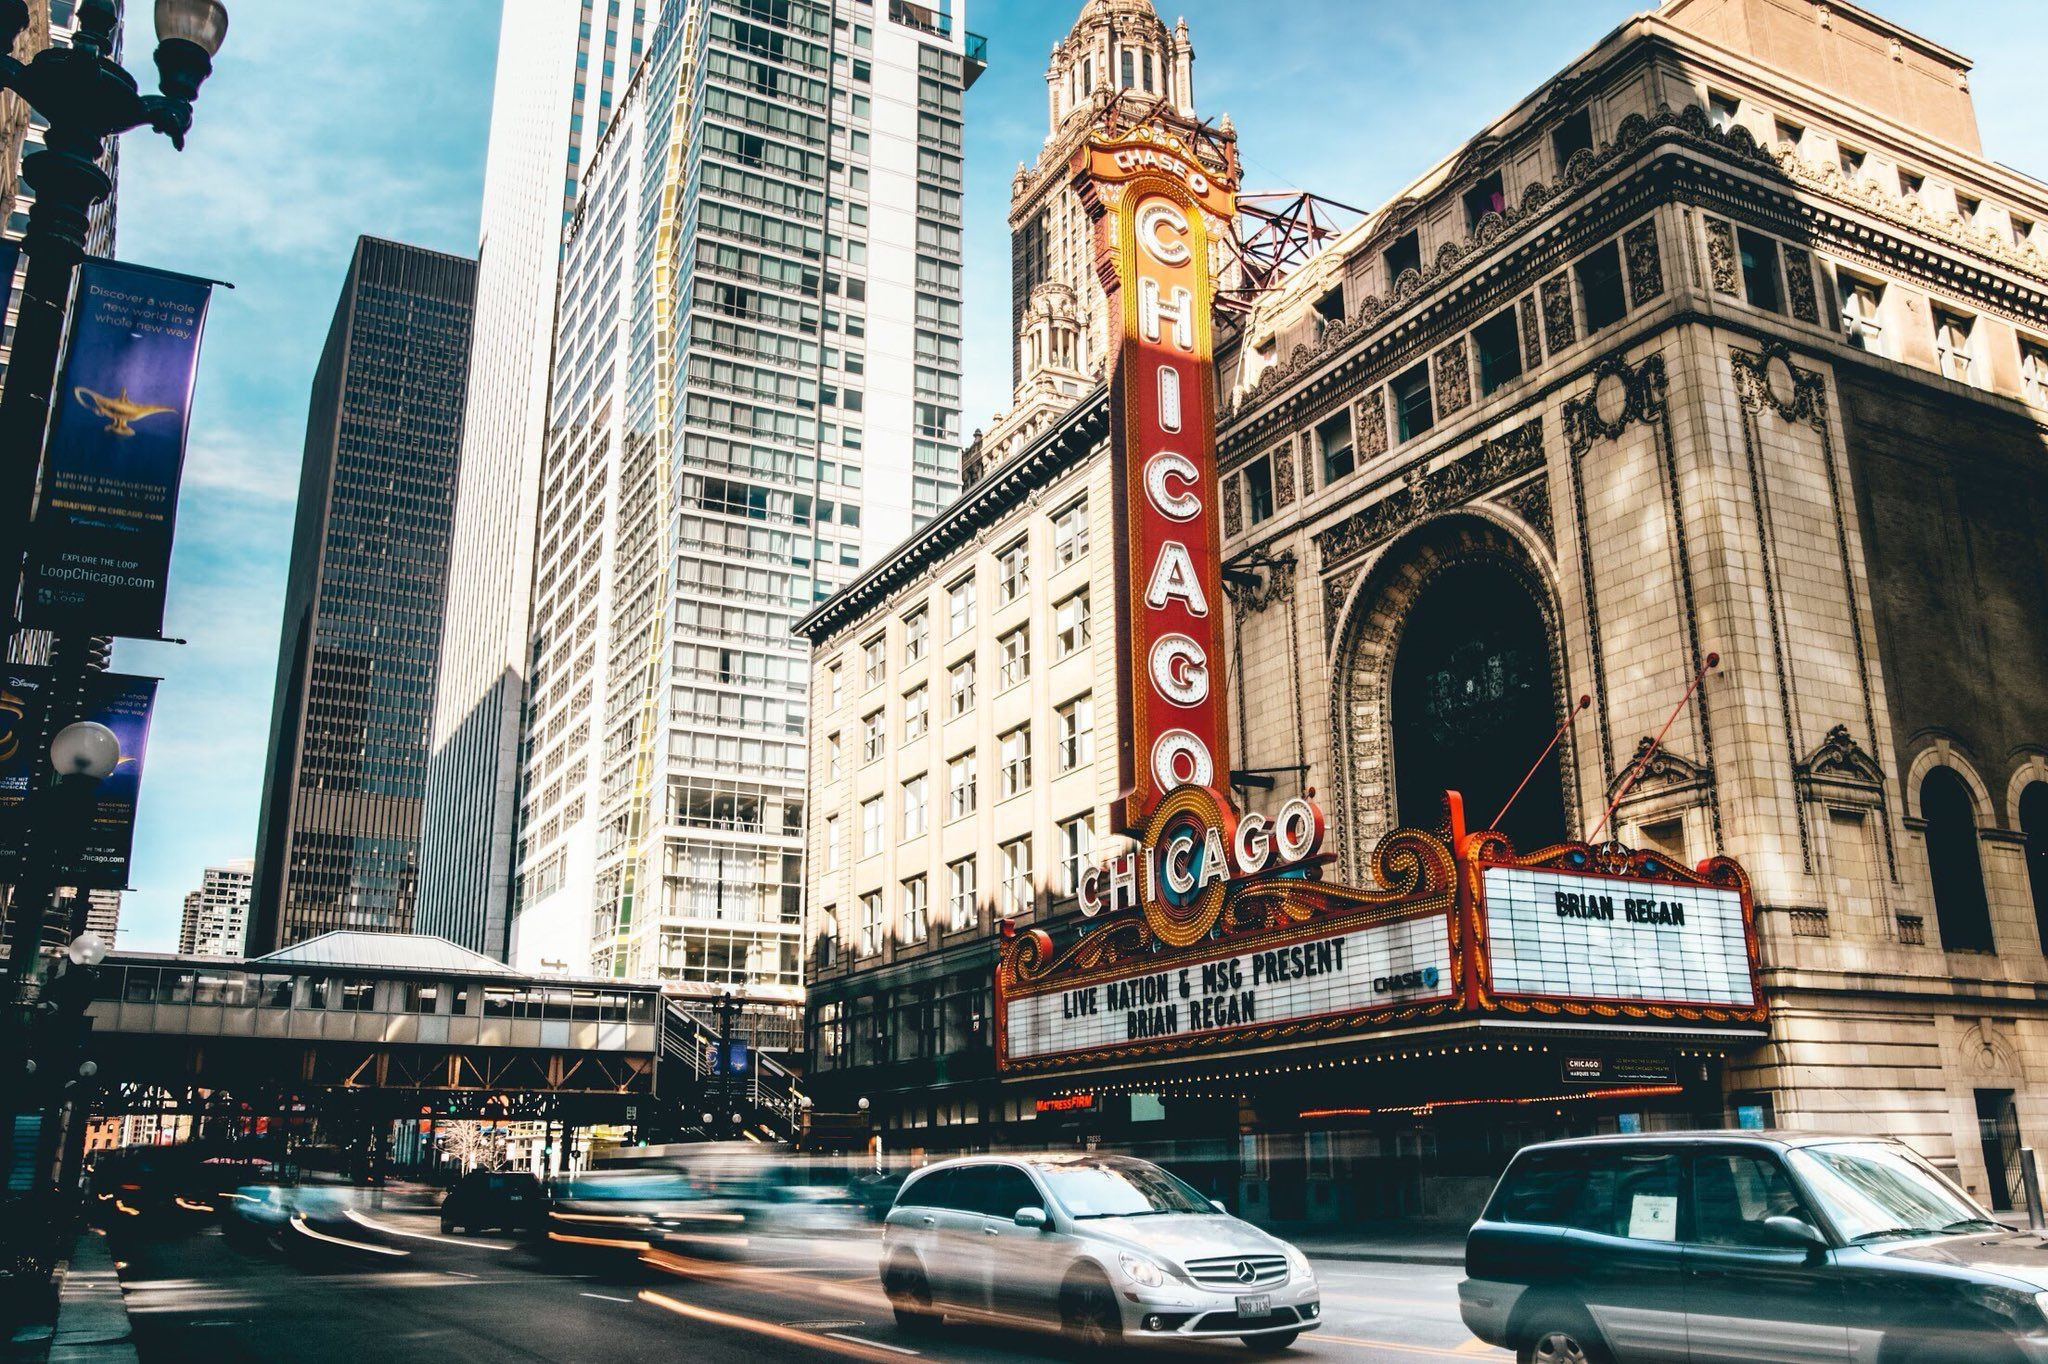 Pin by Nicole Cretu on Places I would rather be Chicago